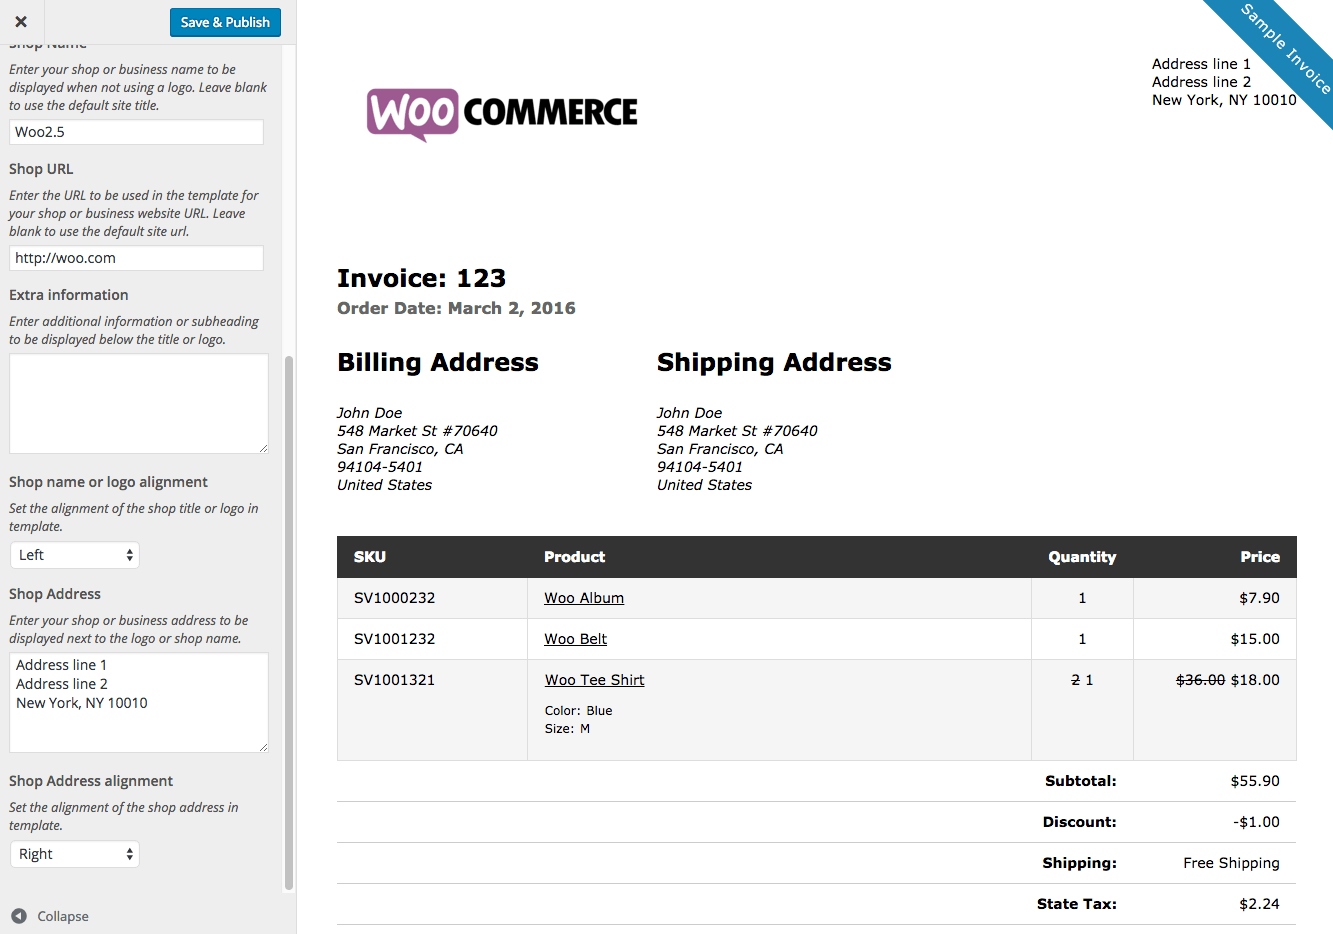 Carsforlessus  Outstanding Woocommerce Print Invoices Amp Packing Lists  Woocommerce Docs With Engaging Woocommerce Print Invoices  Packing Lists Customizer With Cute Receipt Template Office Also Blank Receipts Free In Addition Sales Receipt For Car And How Much Can You Claim Without Receipts As Well As Bbmp Property Tax Online Receipt Additionally Lic Policy Payment Receipt From Docswoocommercecom With Carsforlessus  Engaging Woocommerce Print Invoices Amp Packing Lists  Woocommerce Docs With Cute Woocommerce Print Invoices  Packing Lists Customizer And Outstanding Receipt Template Office Also Blank Receipts Free In Addition Sales Receipt For Car From Docswoocommercecom